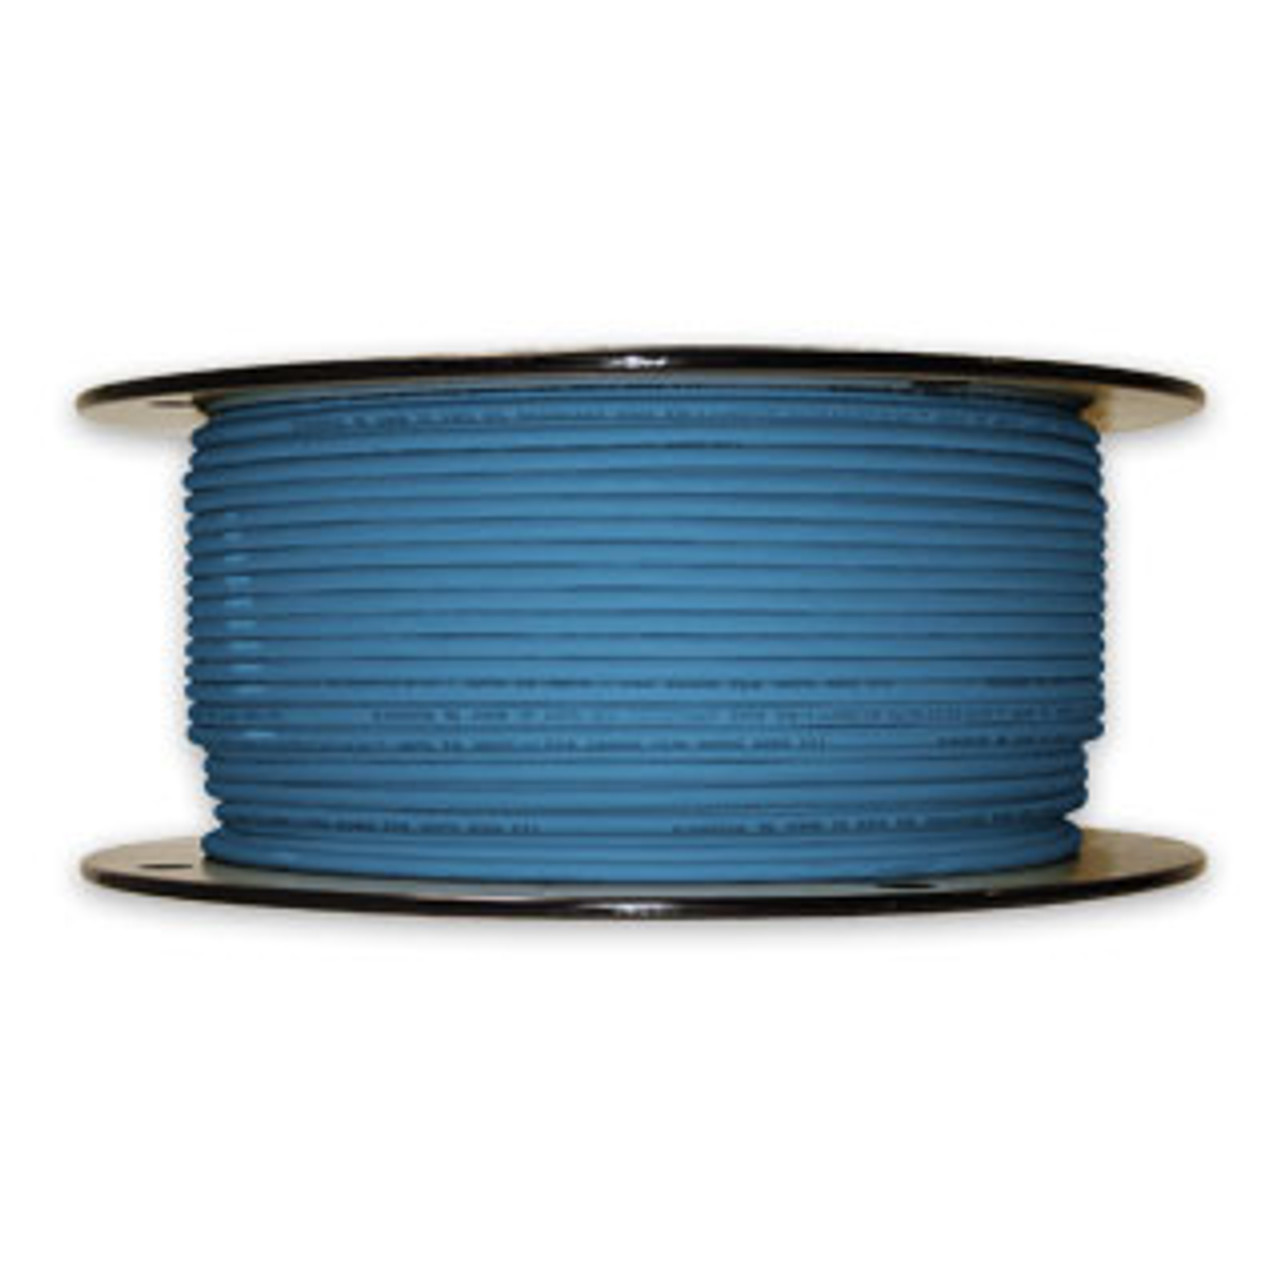 Arctic Ultraflex Cold Weather Flexible Wire 500 Foot Spool 12 AWG Blue Single Conductor Wire tinned fine strand 100% copper